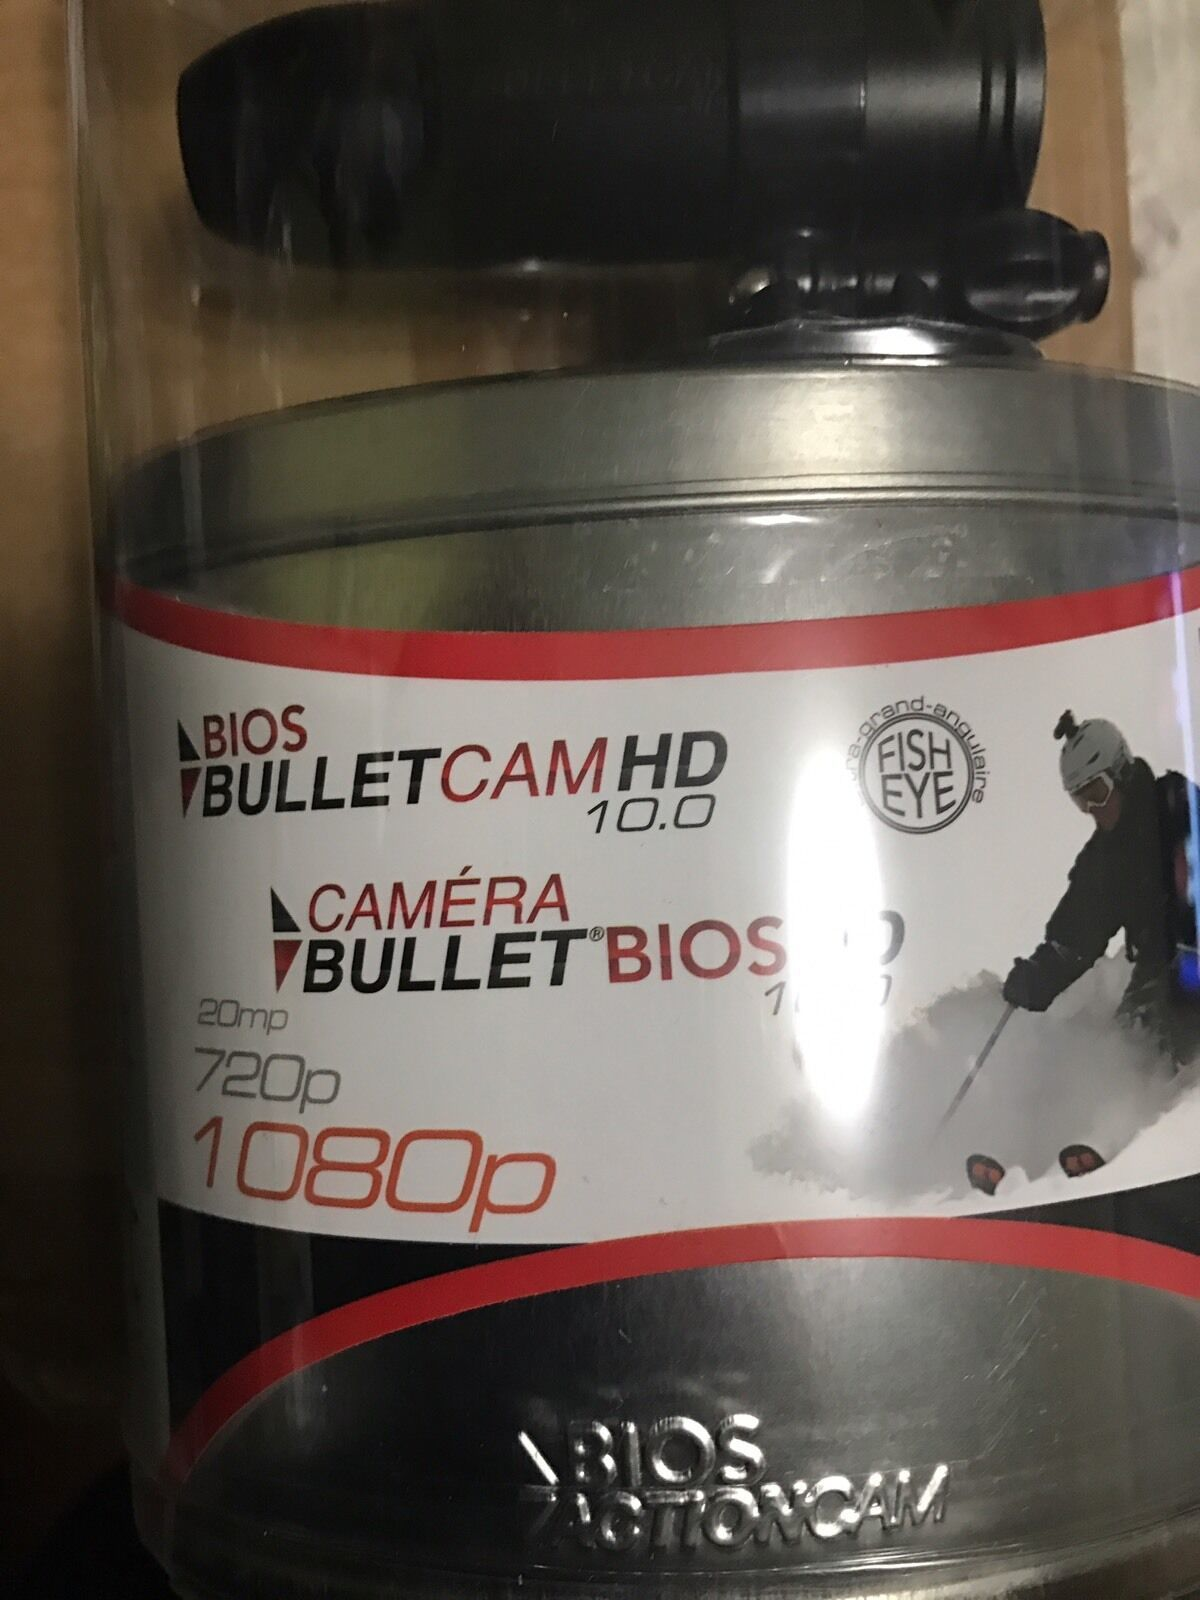 BULLET HD PRO1080P DIGITAL CAMERA OUTDOOR ACTION SPORTS WEARABLE 12.0 MEGAPIXEL